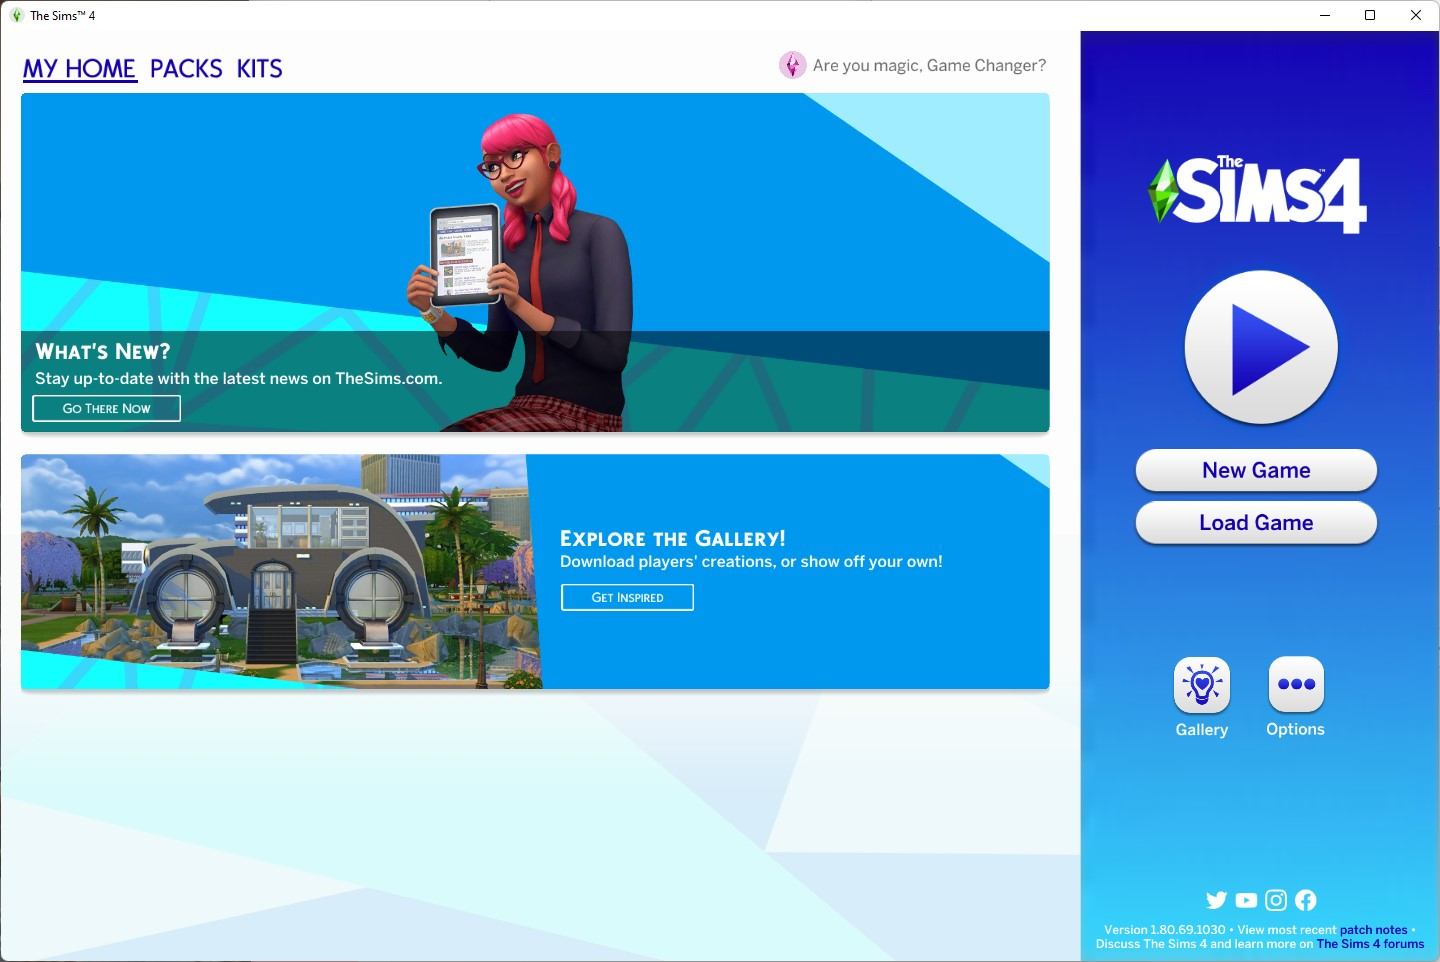 The Sims 4 1.80.69.1030 - Color Swatches Update - Title Screen - September 21st, 2021